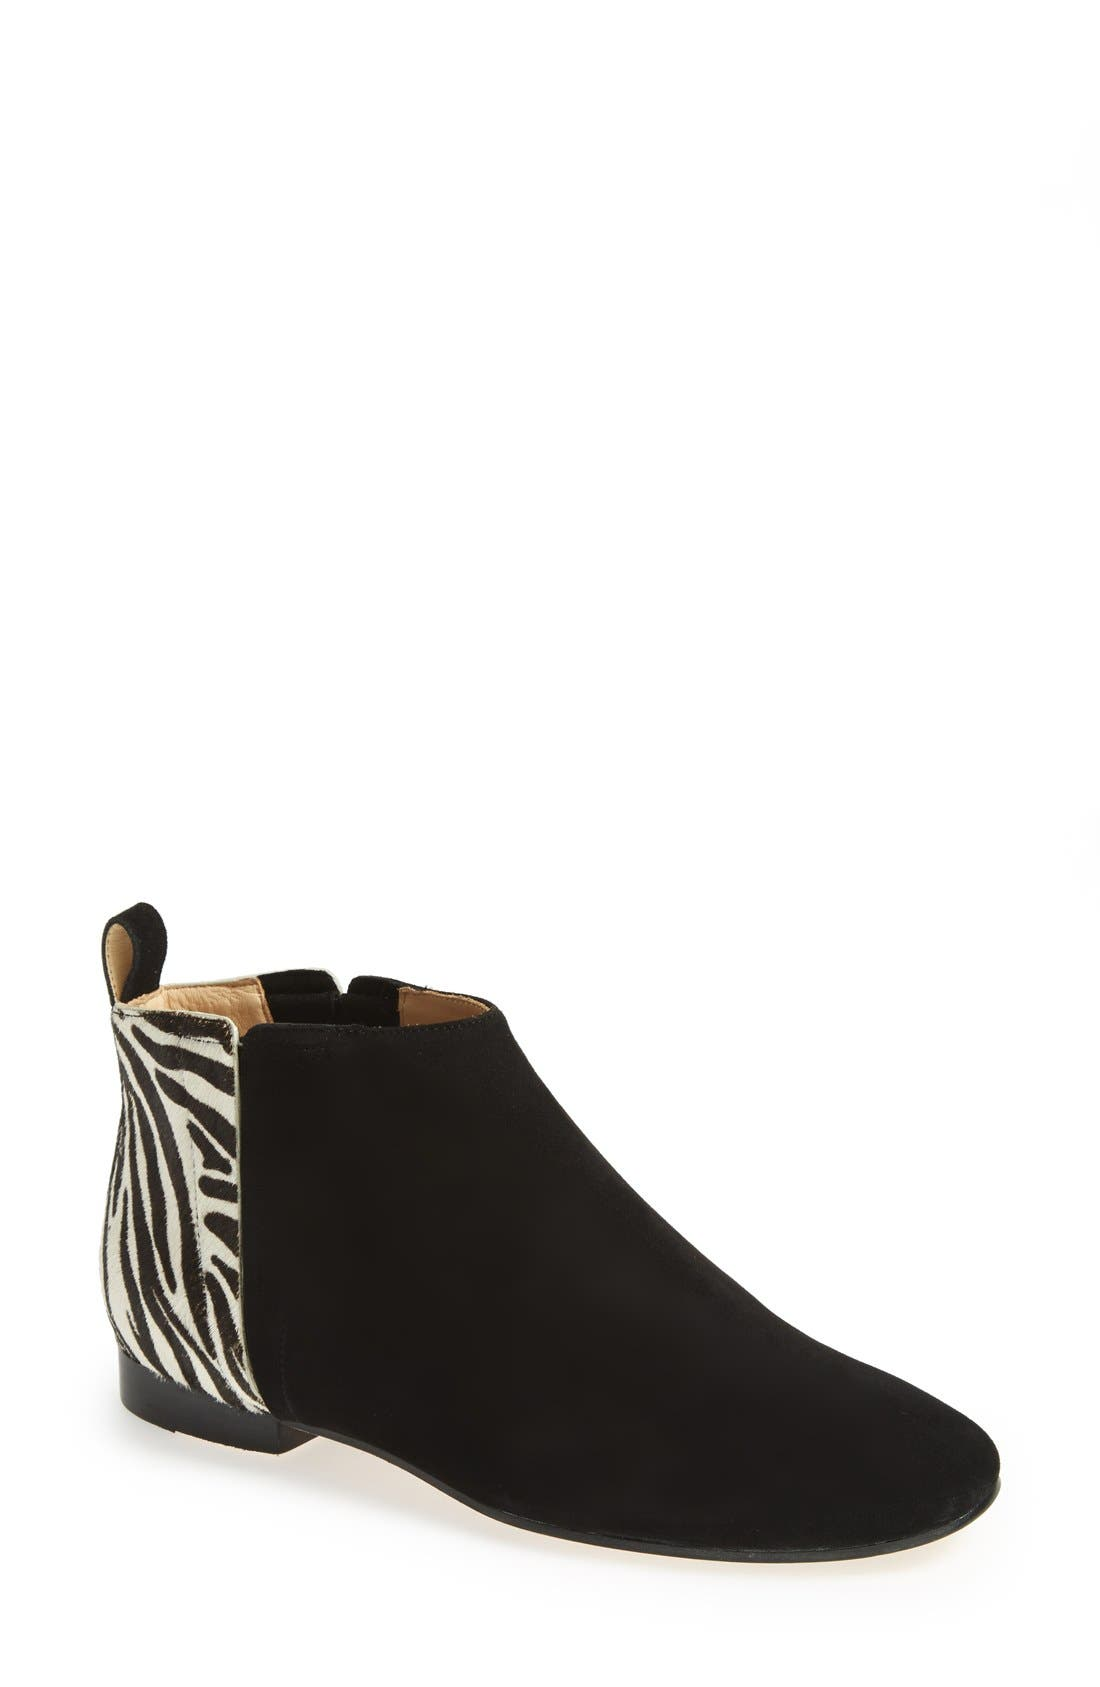 COLE HAAN 'Embury' Bootie, Main, color, 001